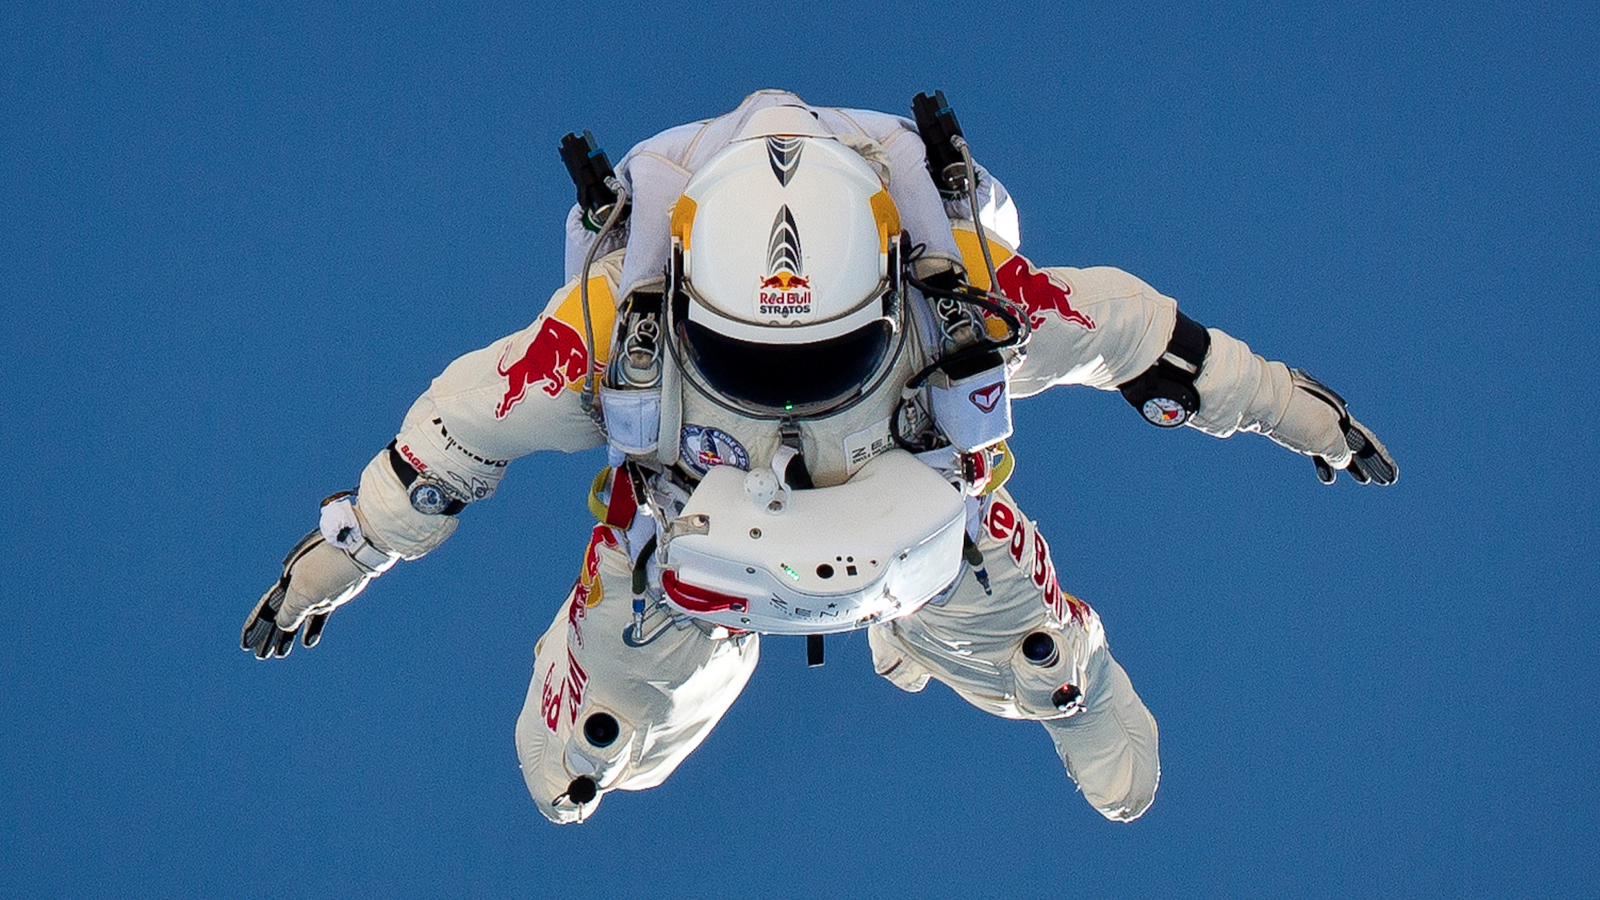 Red Bull Stratos project,